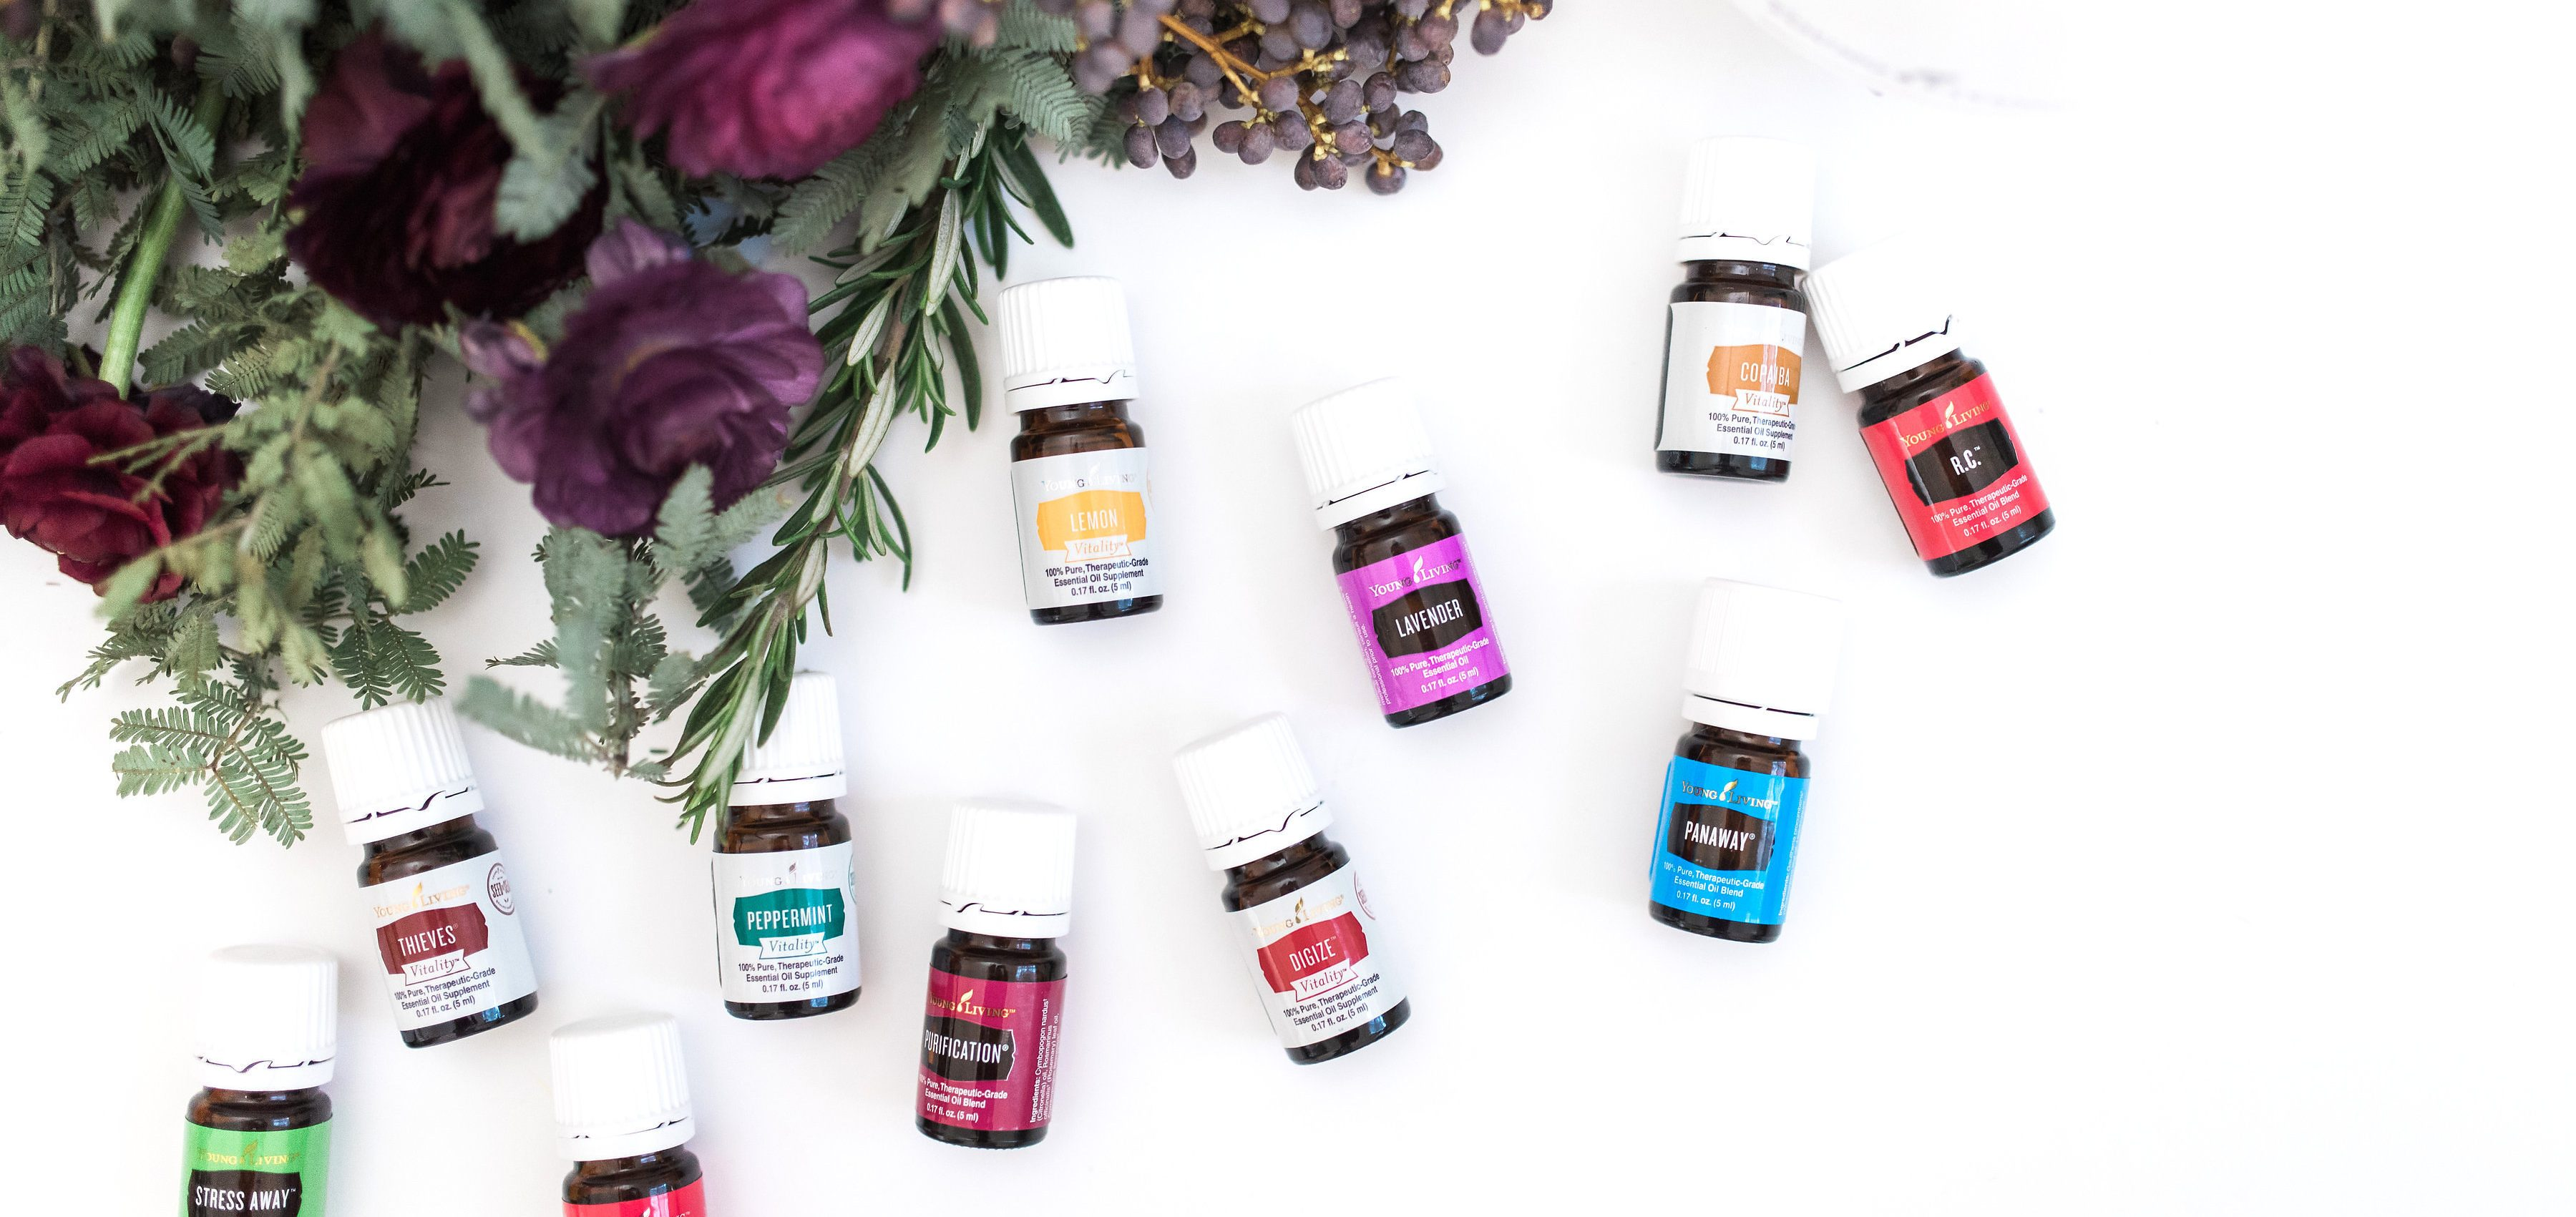 The Oily Life - Clary Dreamers - Young Living Essential Oils